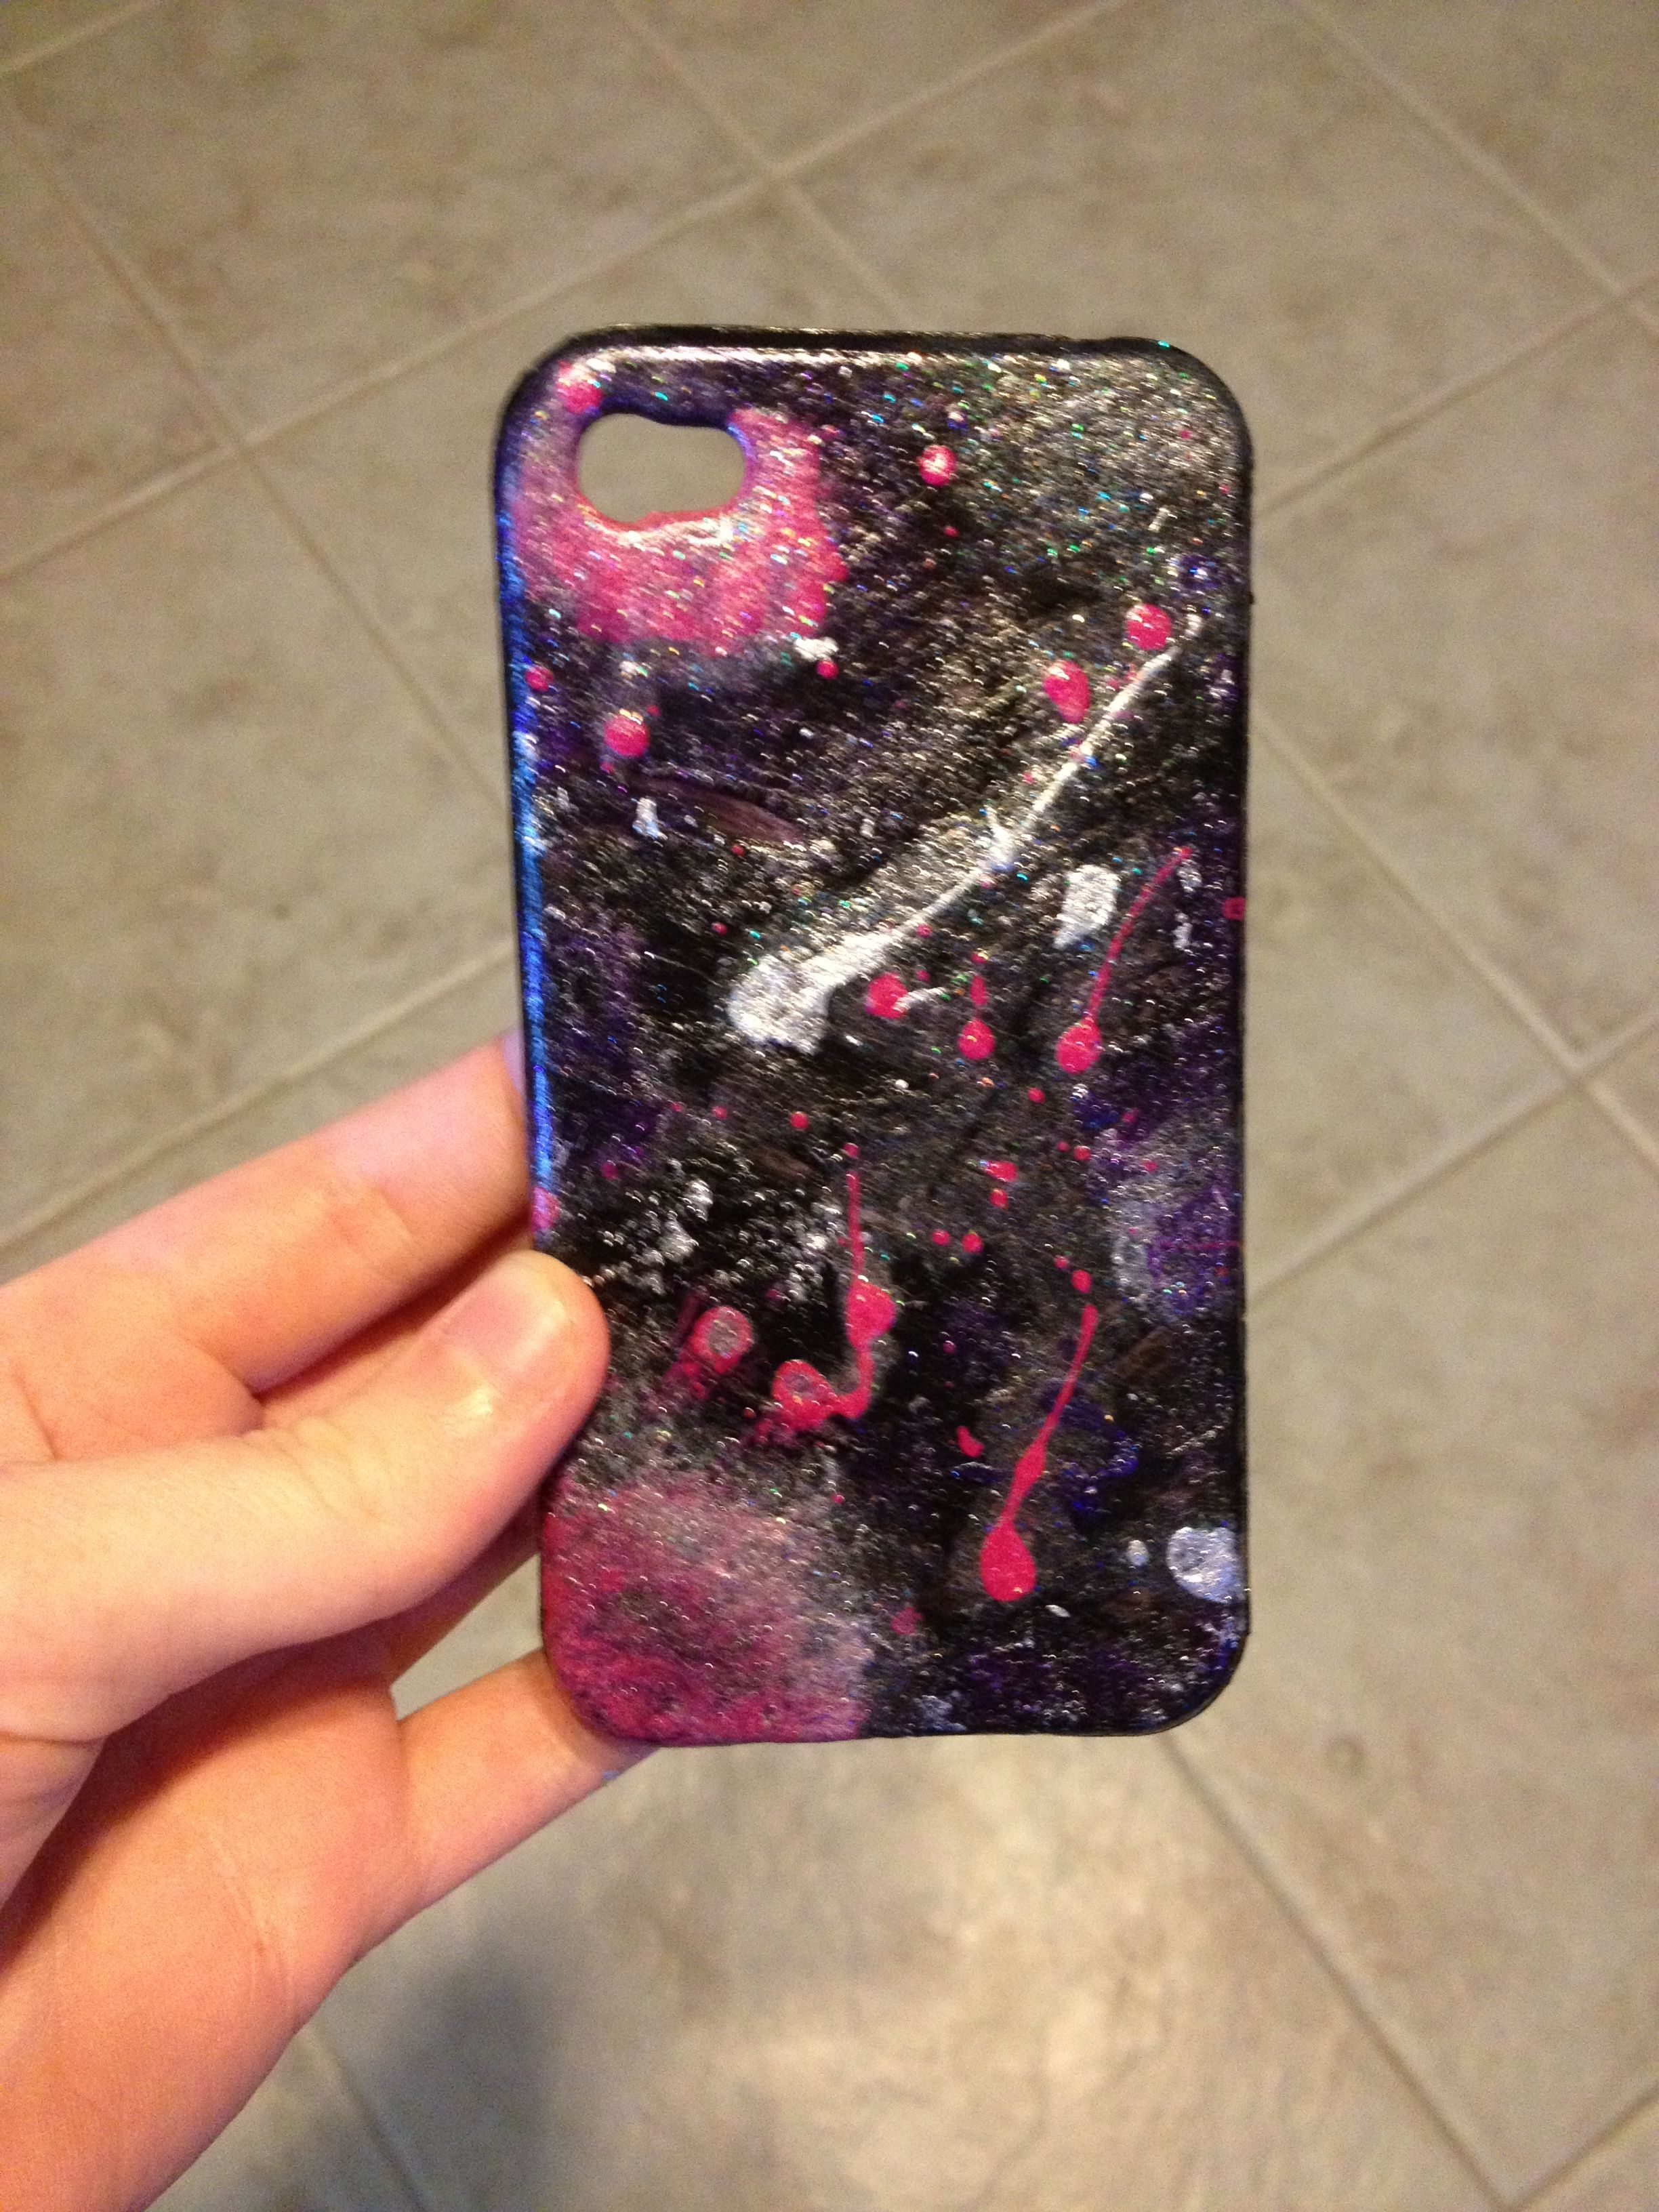 Pin By Sandy Raymore On Diy Projects By Me Diy Phone Case Diy Phone Diy Iphone Case